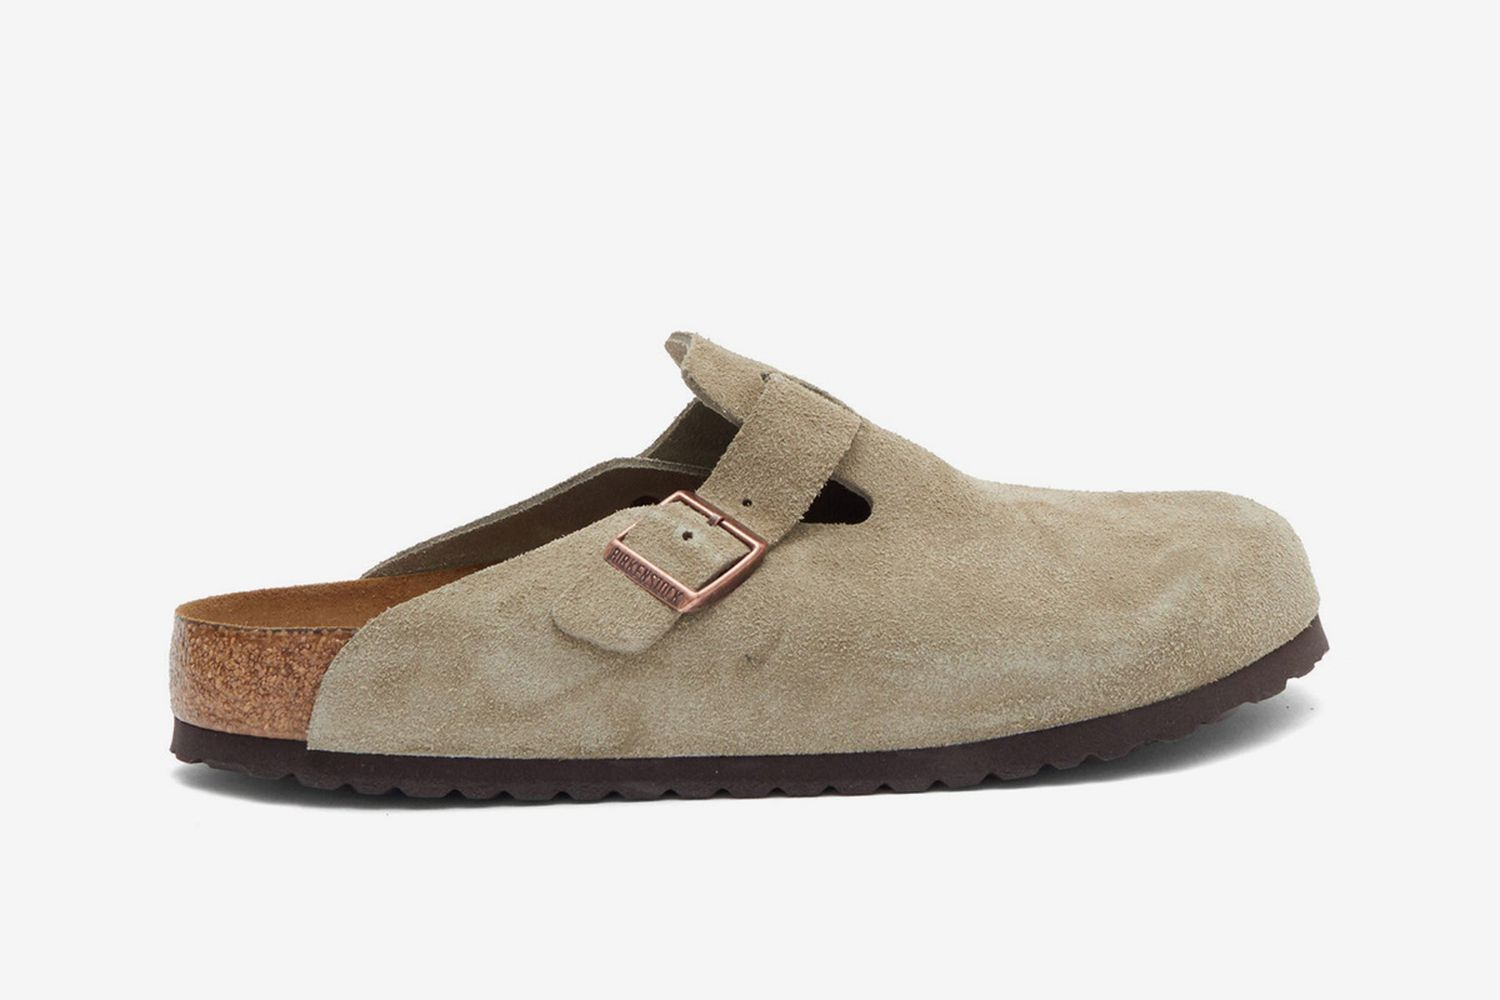 Boston Suede Sandals